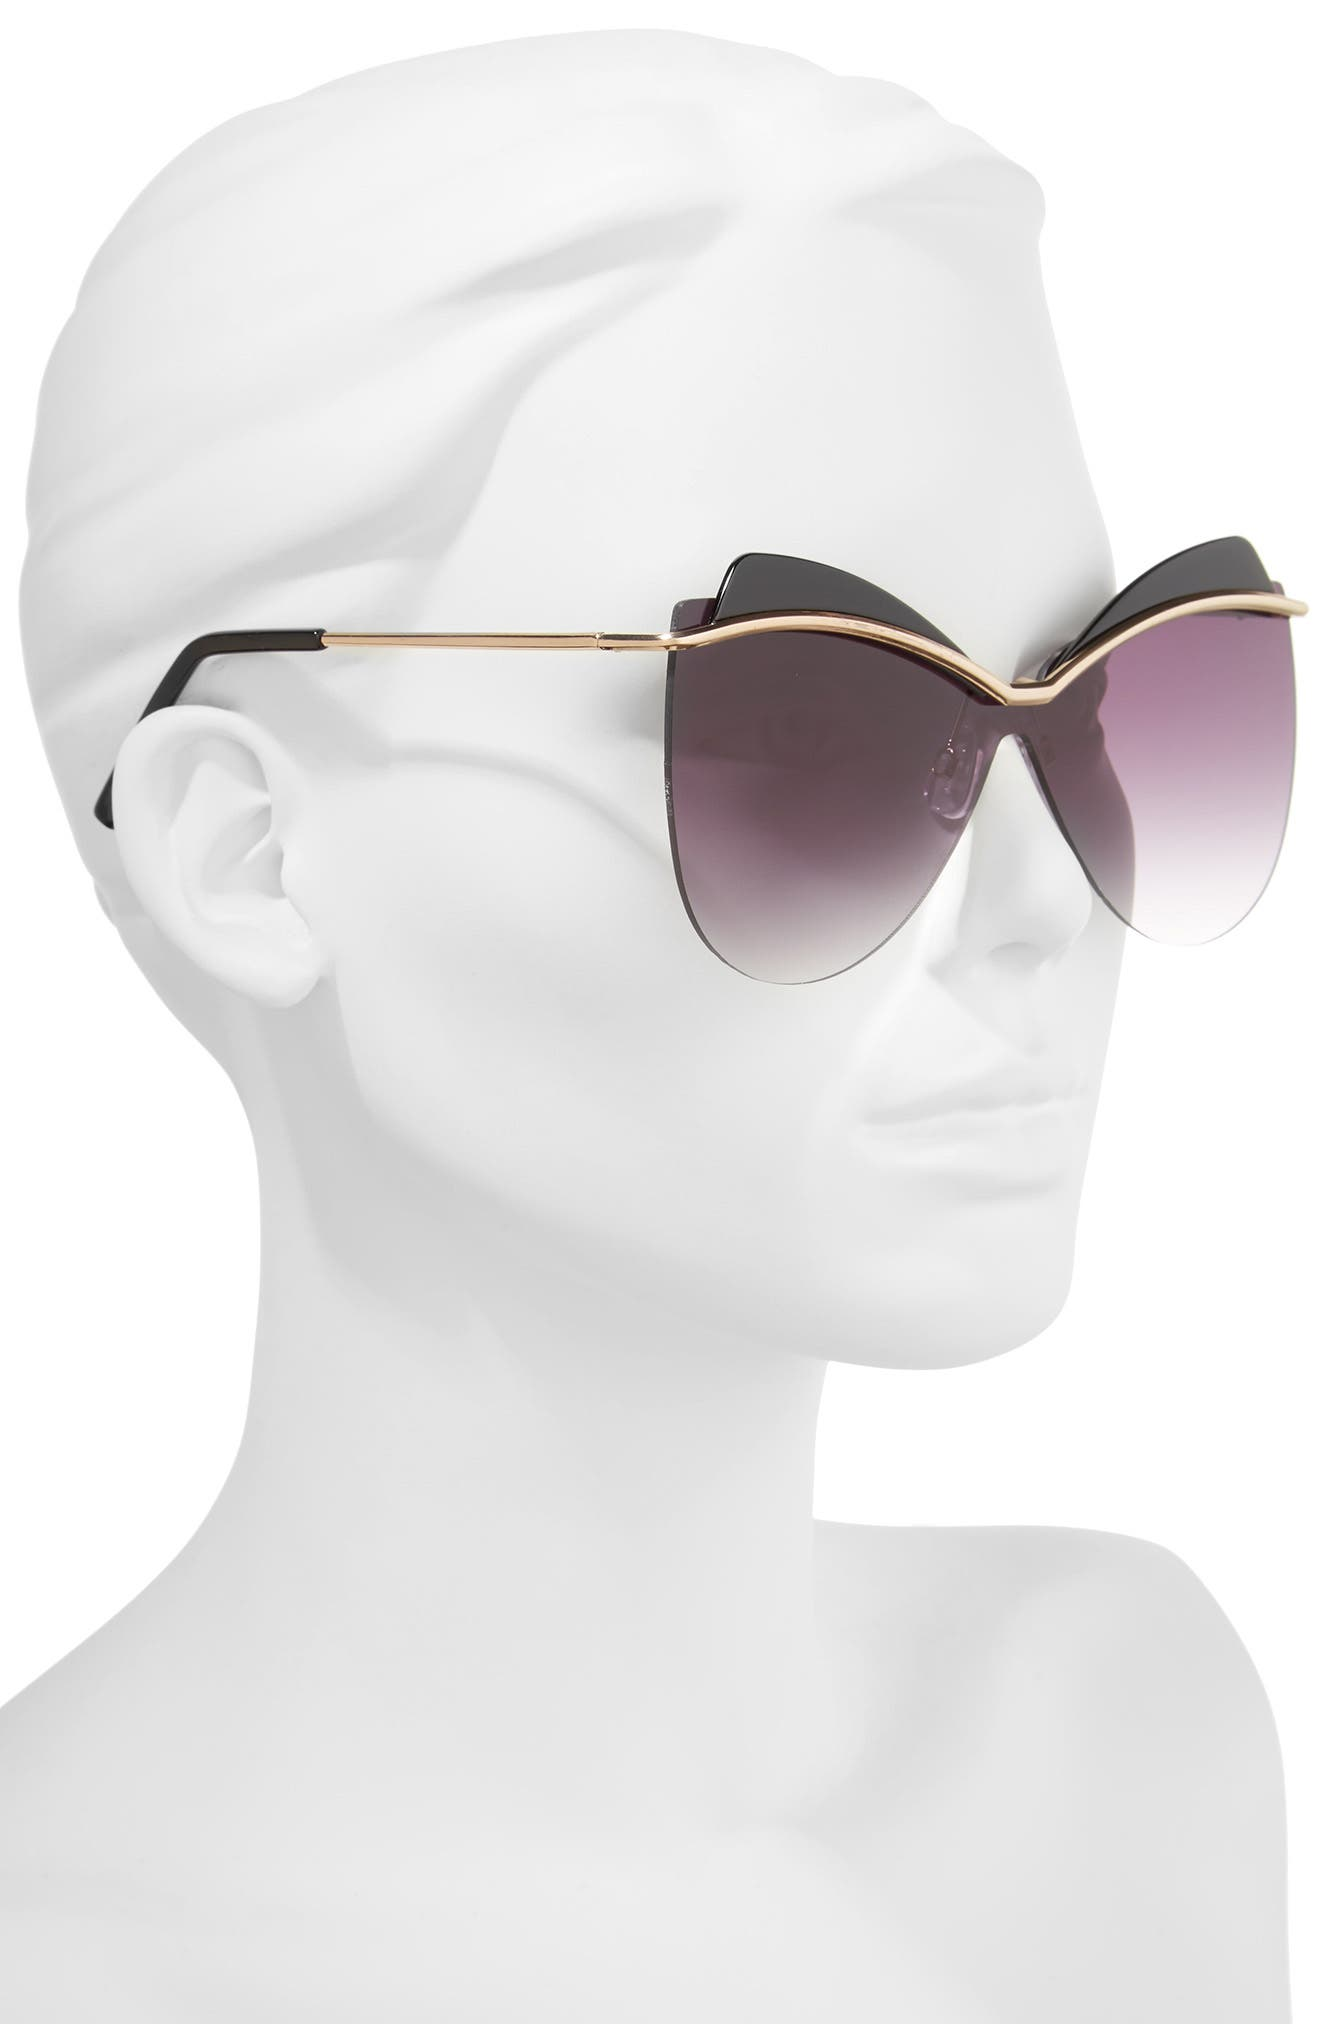 65mm Rimless Shield Sunglasses,                             Alternate thumbnail 2, color,                             001